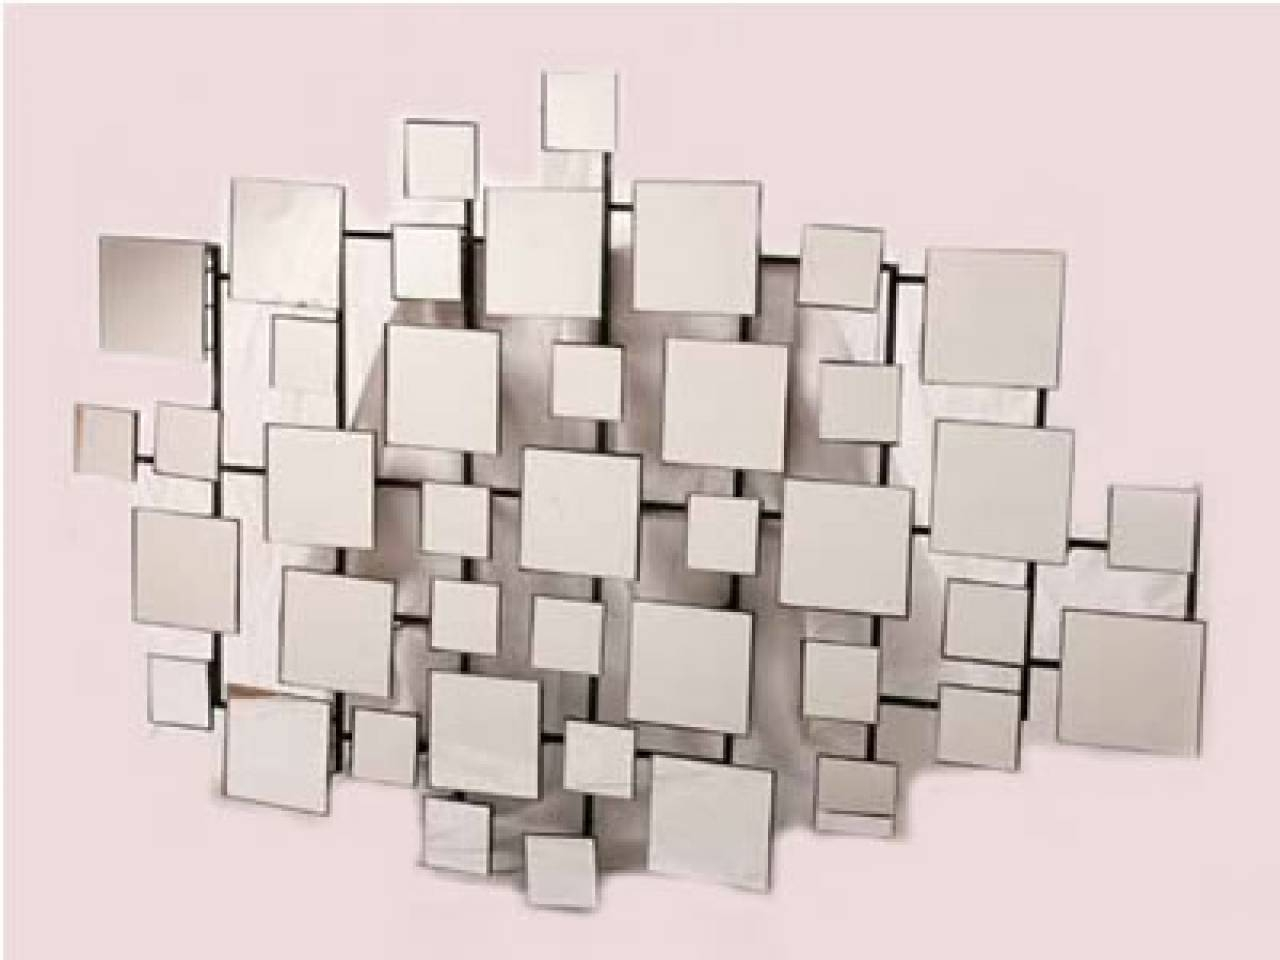 Wall Art Designs: Mirrored Wall Art Geometric Mirror Wall Art Regarding Best And Newest Modern Mirrored Wall Art (View 3 of 20)